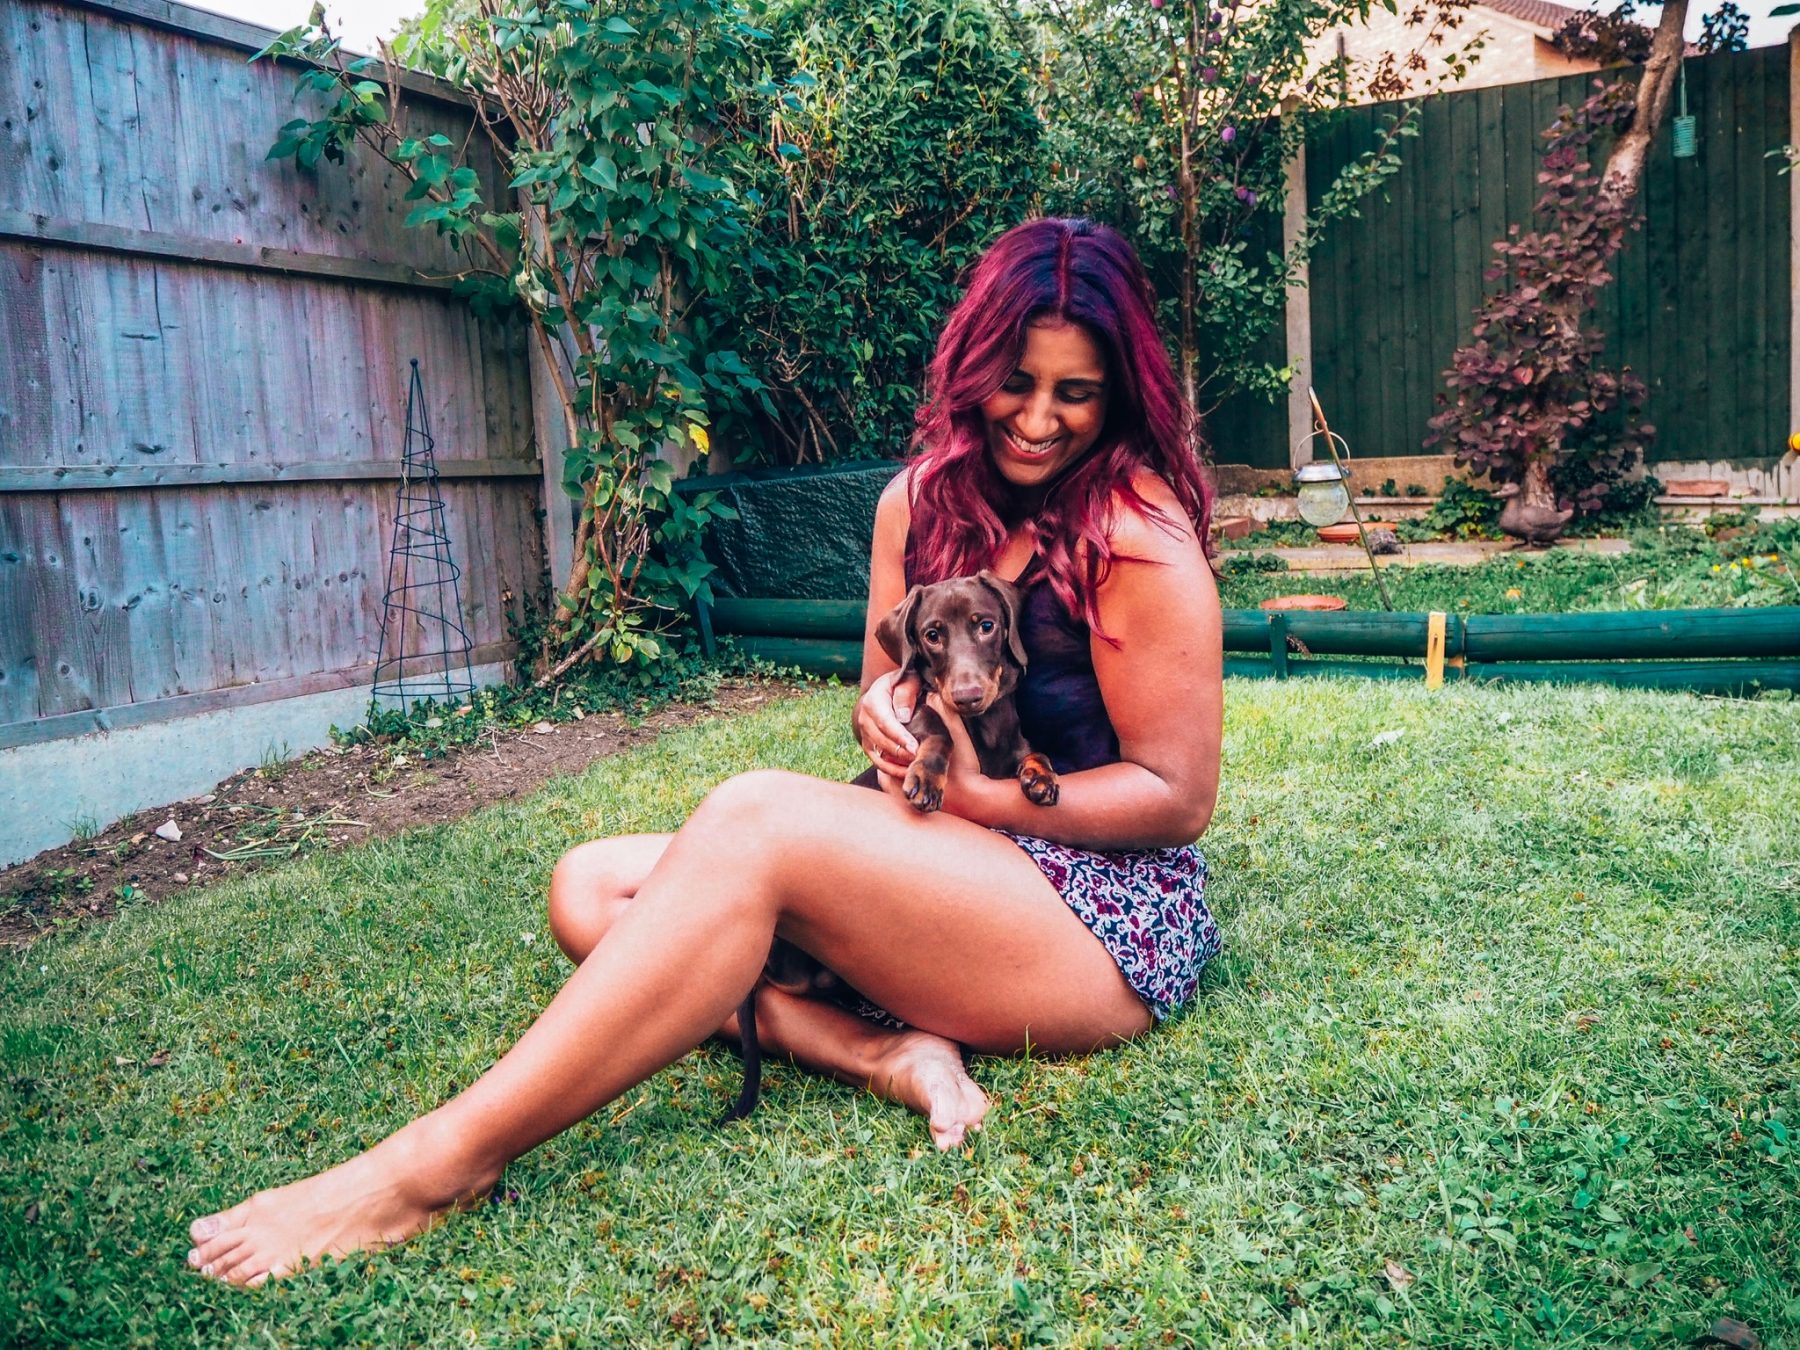 Absolutely Lucy with Mustard the sausage dog, talking about dog sitting jobs